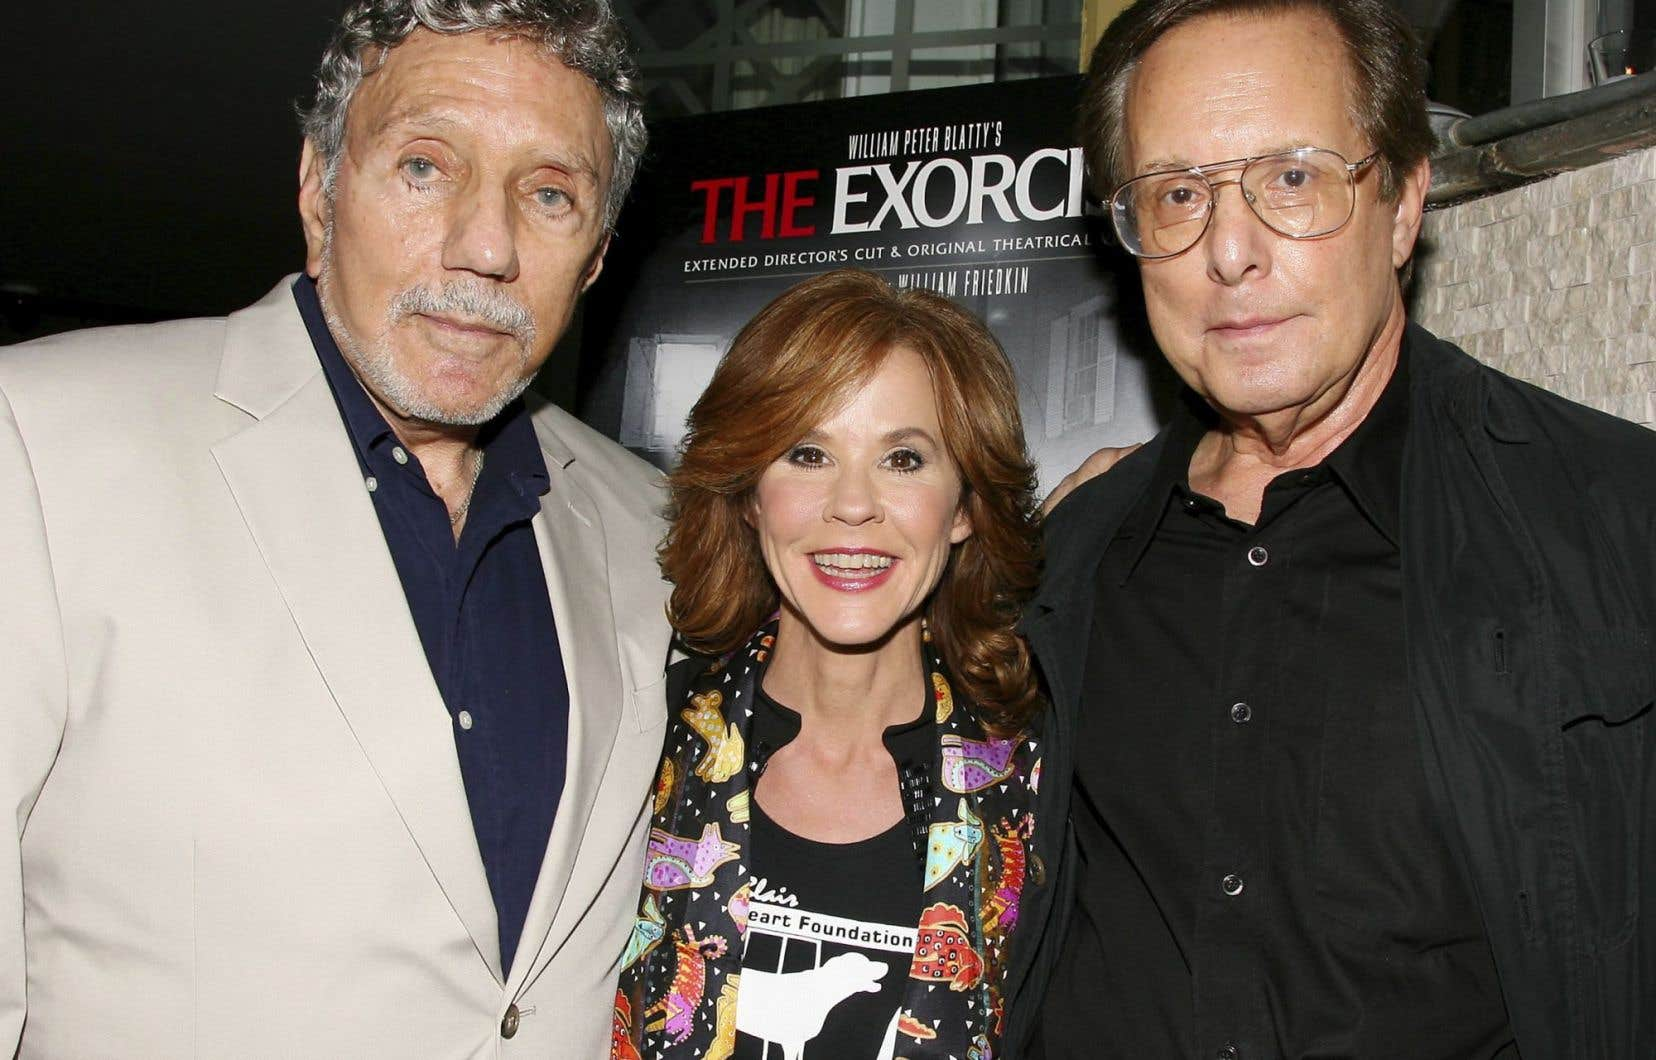 William Peter Blatty (à gauche) en 2010, accompagné de Linda Blair et de William Friedkin, respectivement comédienne et réalisateur de <em>L'exorciste</em>.